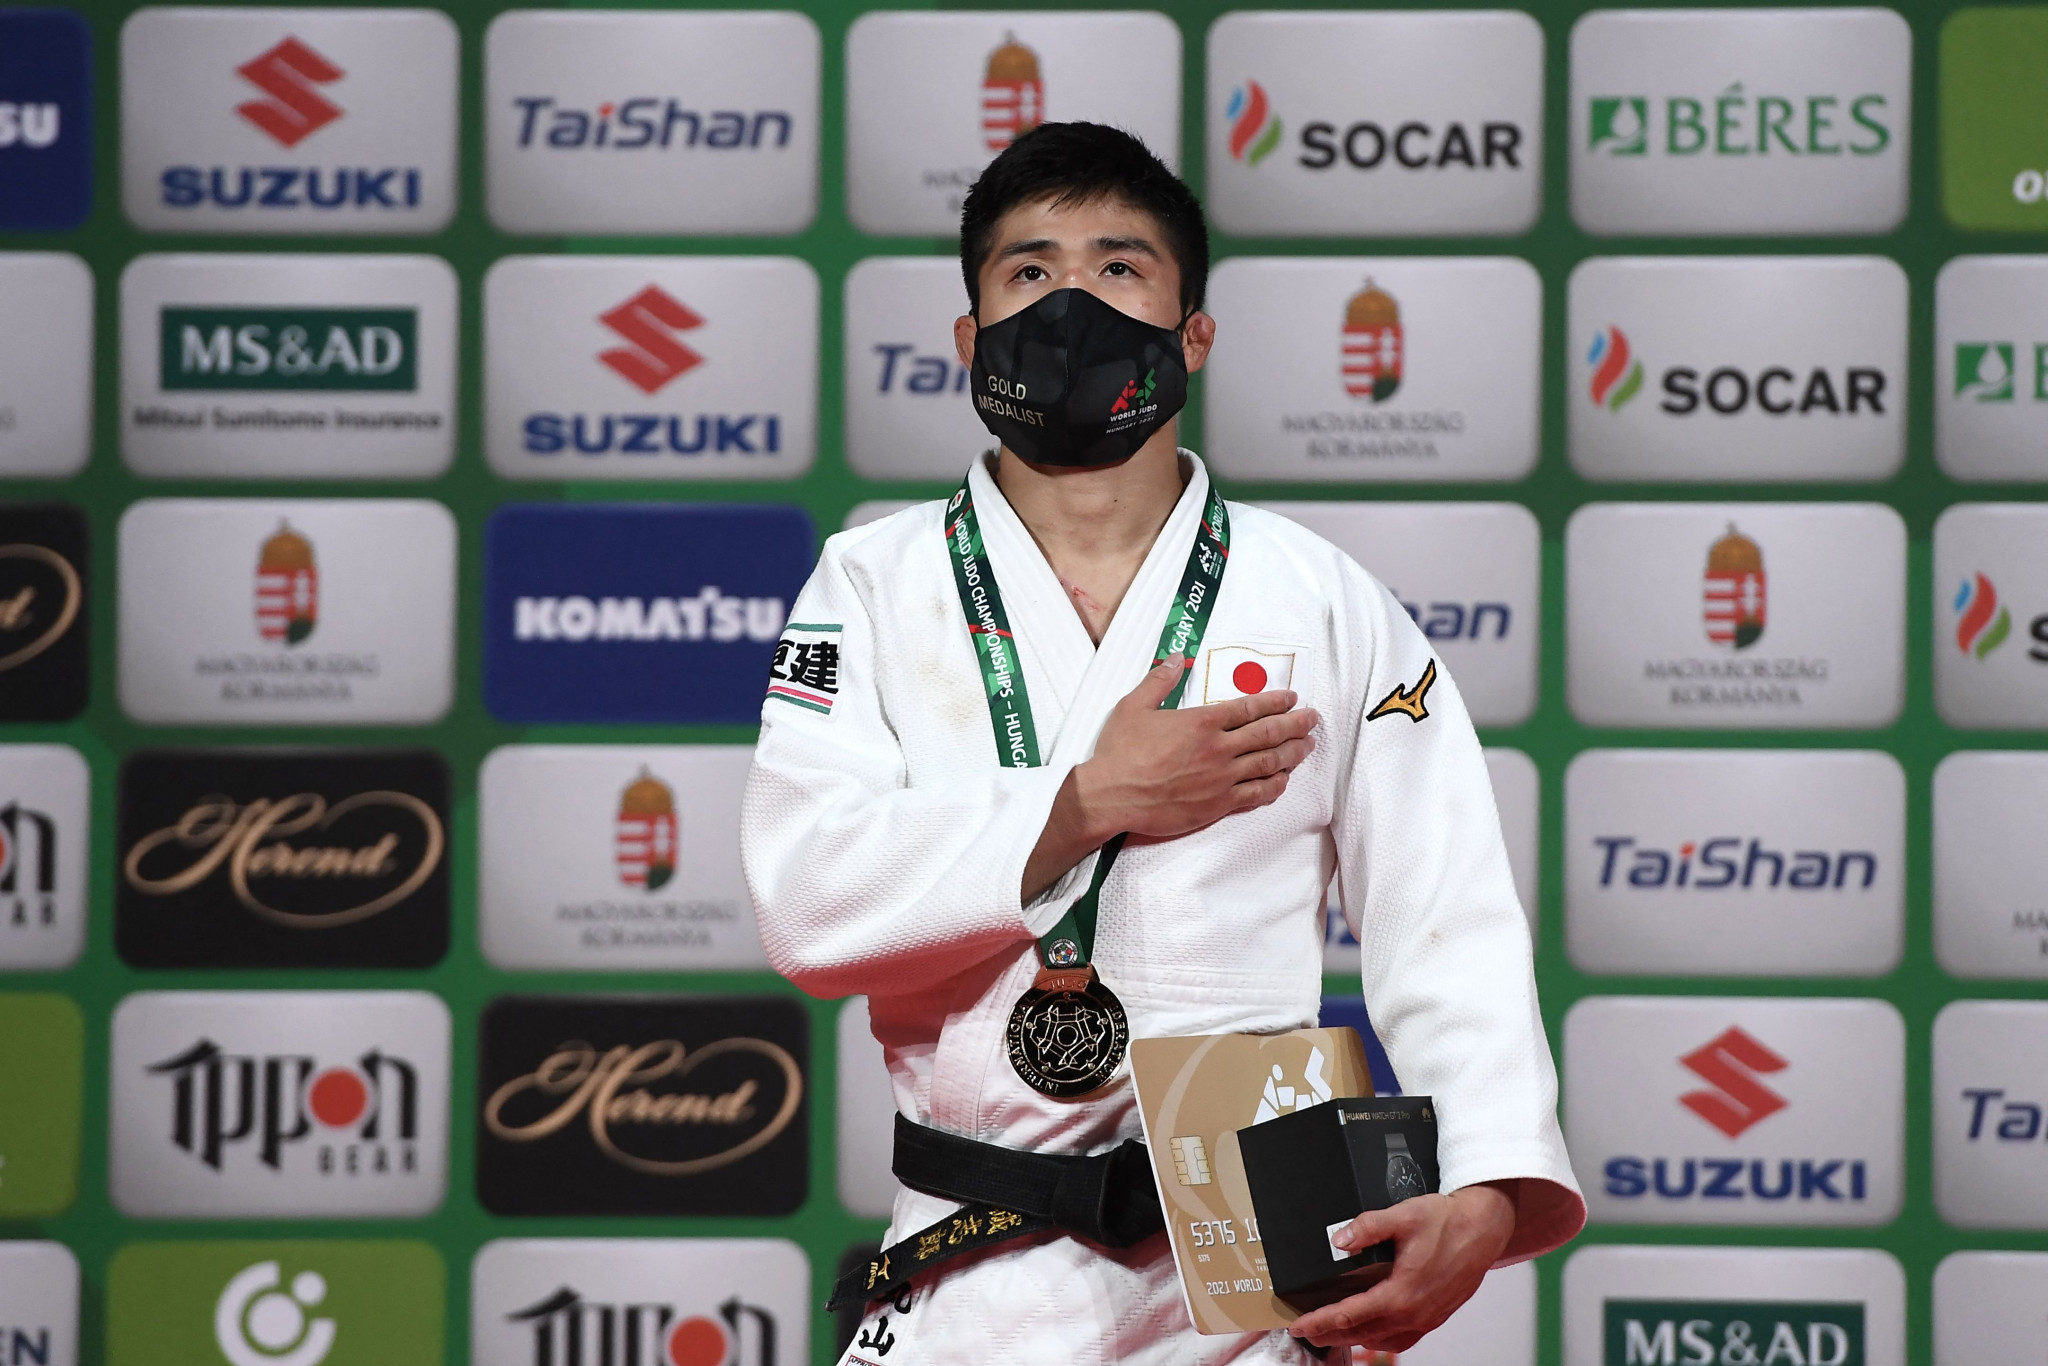 Maruyama and Shishime triumph on golden day for Japan at IJF World Championships